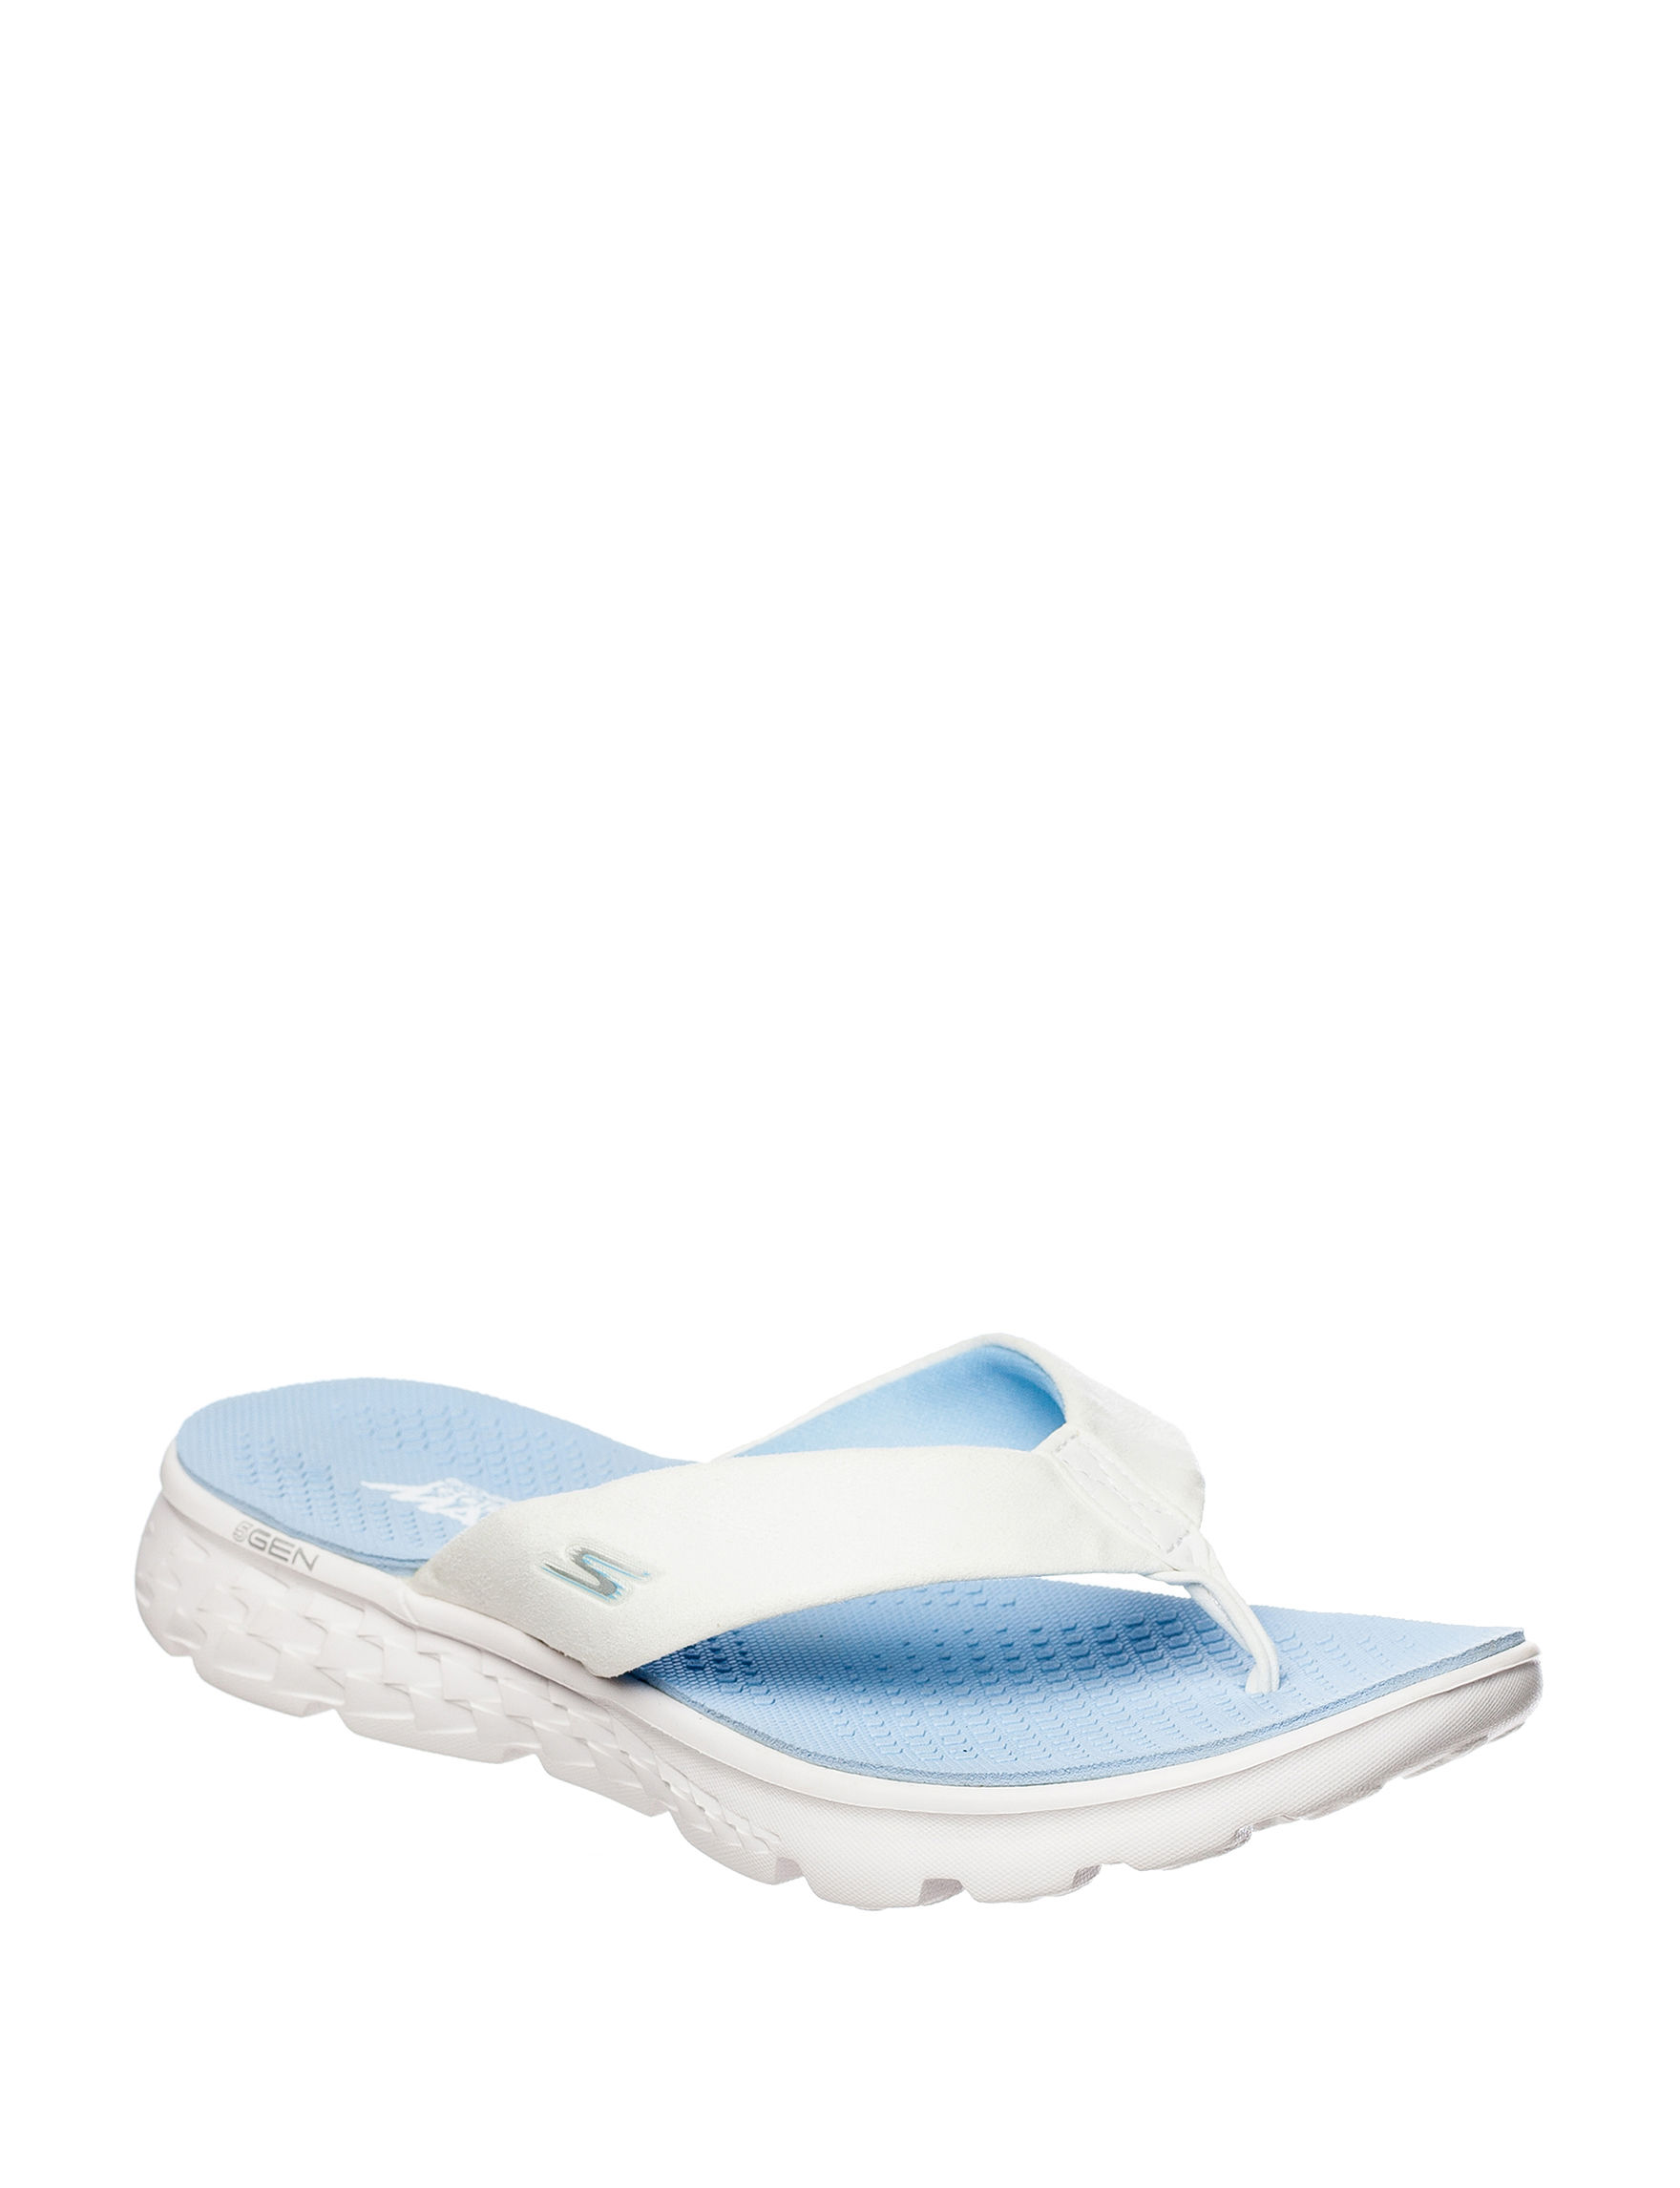 Skechers White/Lt Blue Flat Sandals Flip Flops Sport Sandals